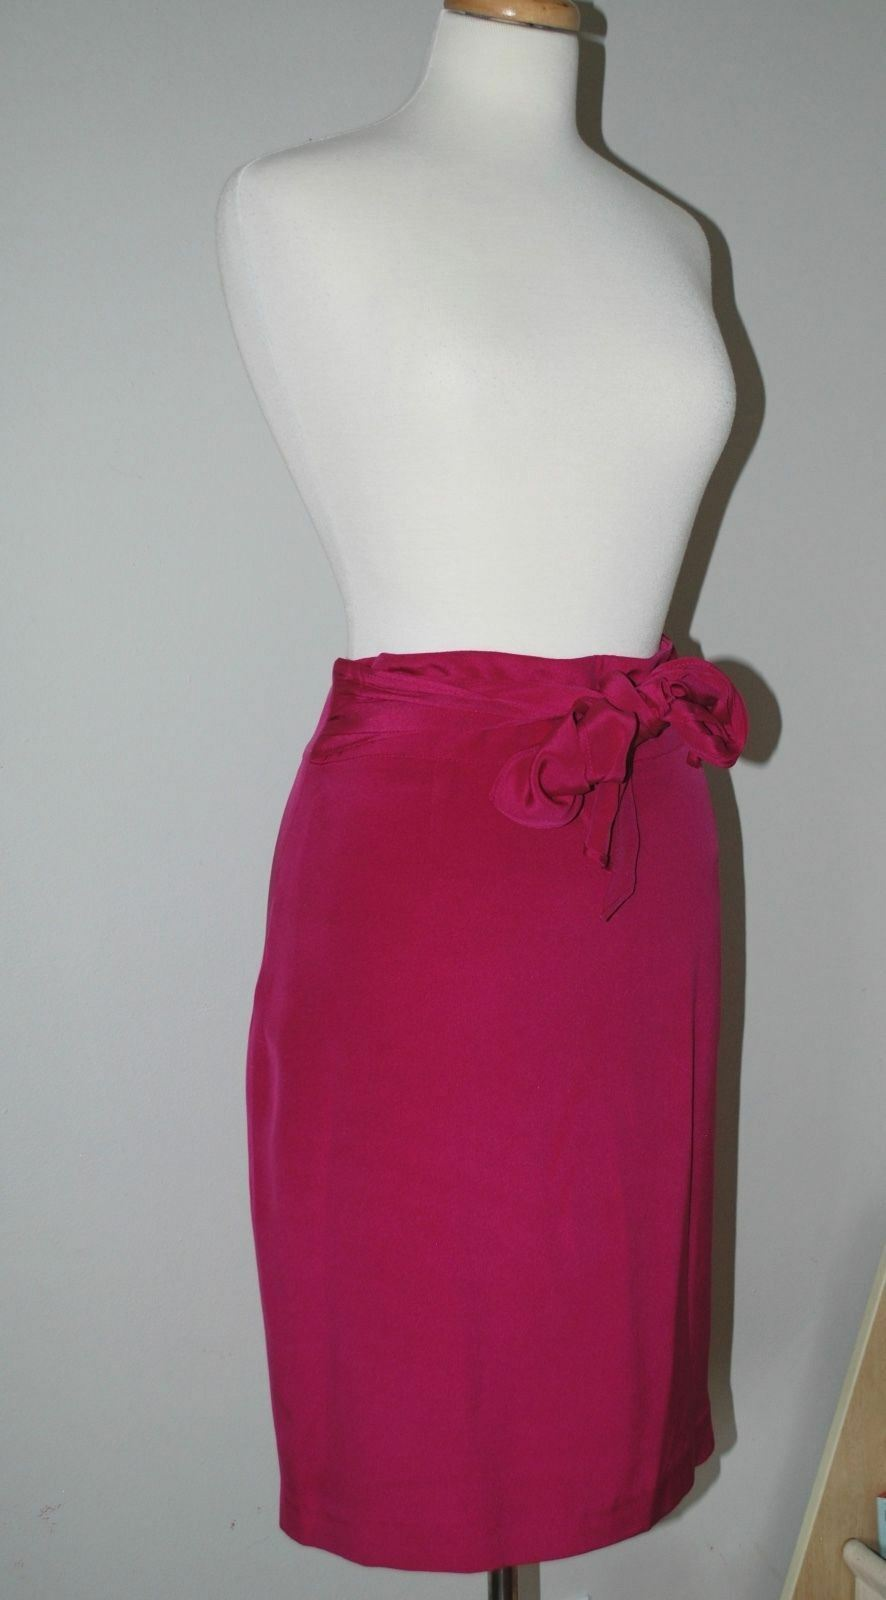 LOUBEN FUCHSIA PINK 100% SILK SKIRT - BOW IN THE FRONT - SIZE 10 STYLE 249-5794